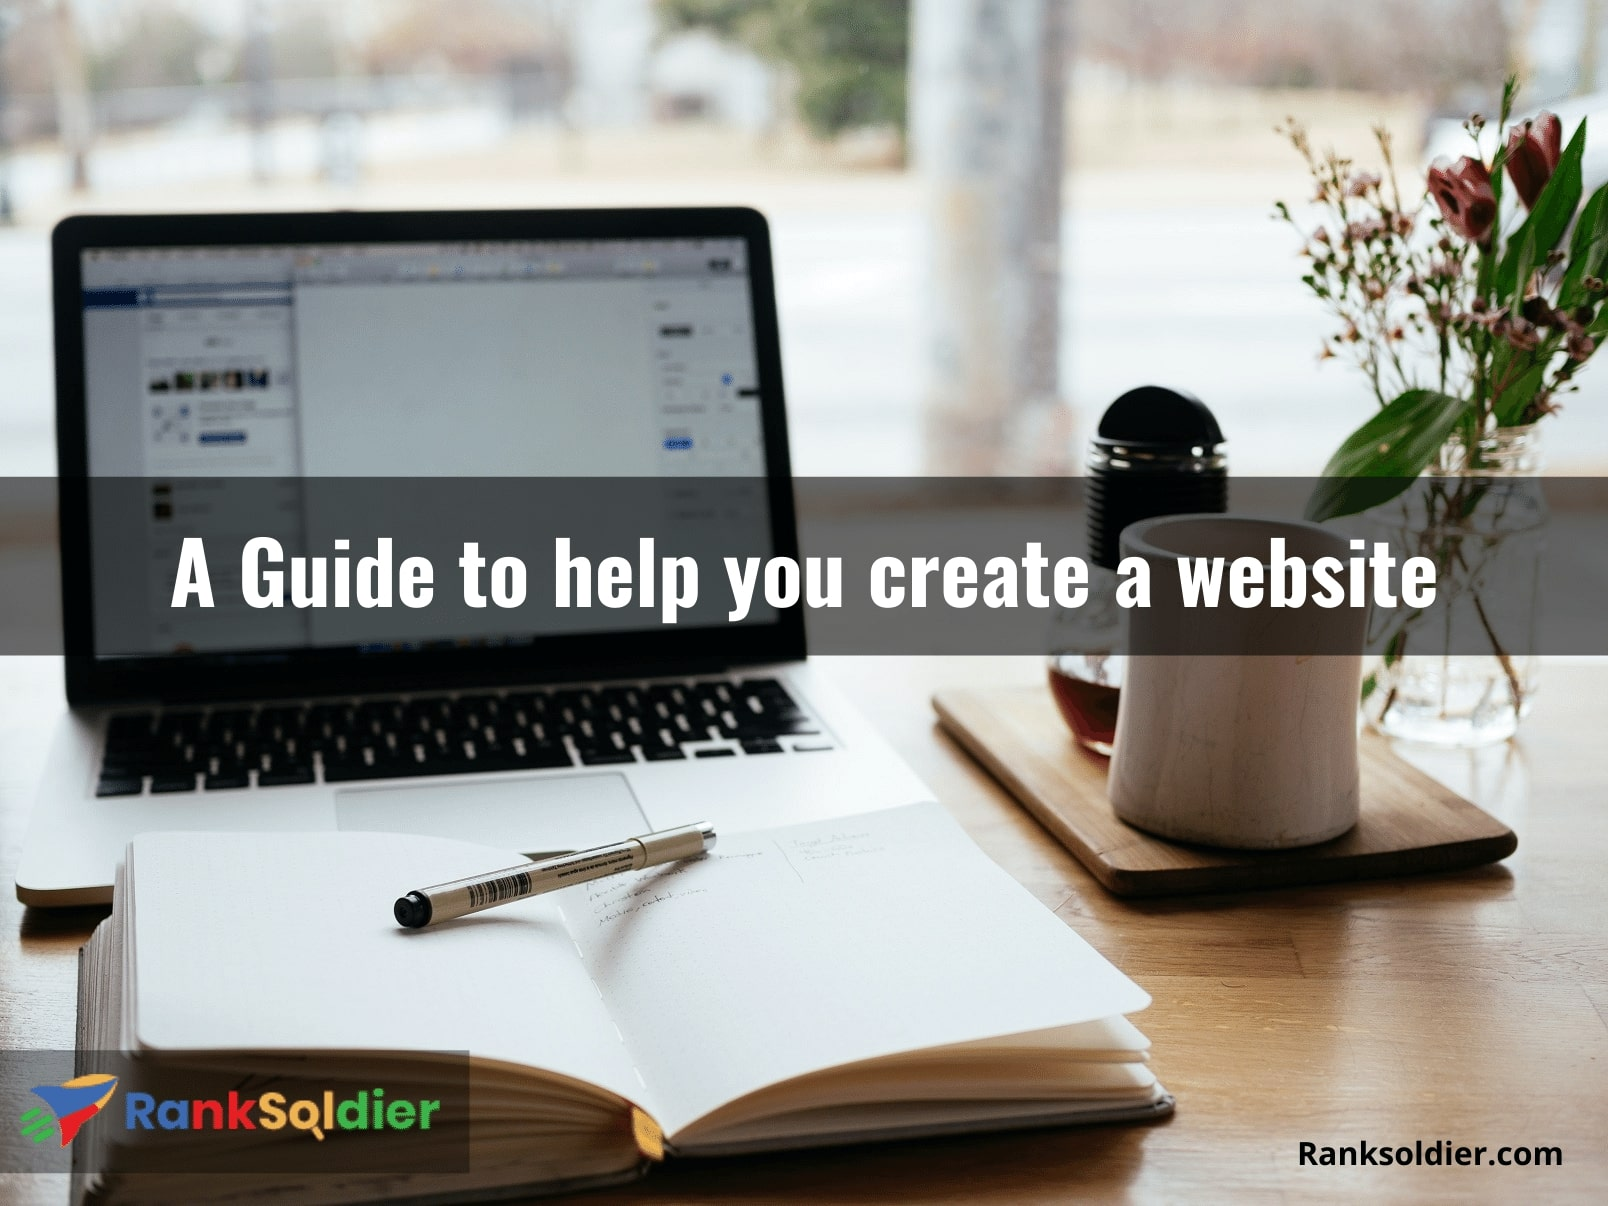 A Guide to help you create a website